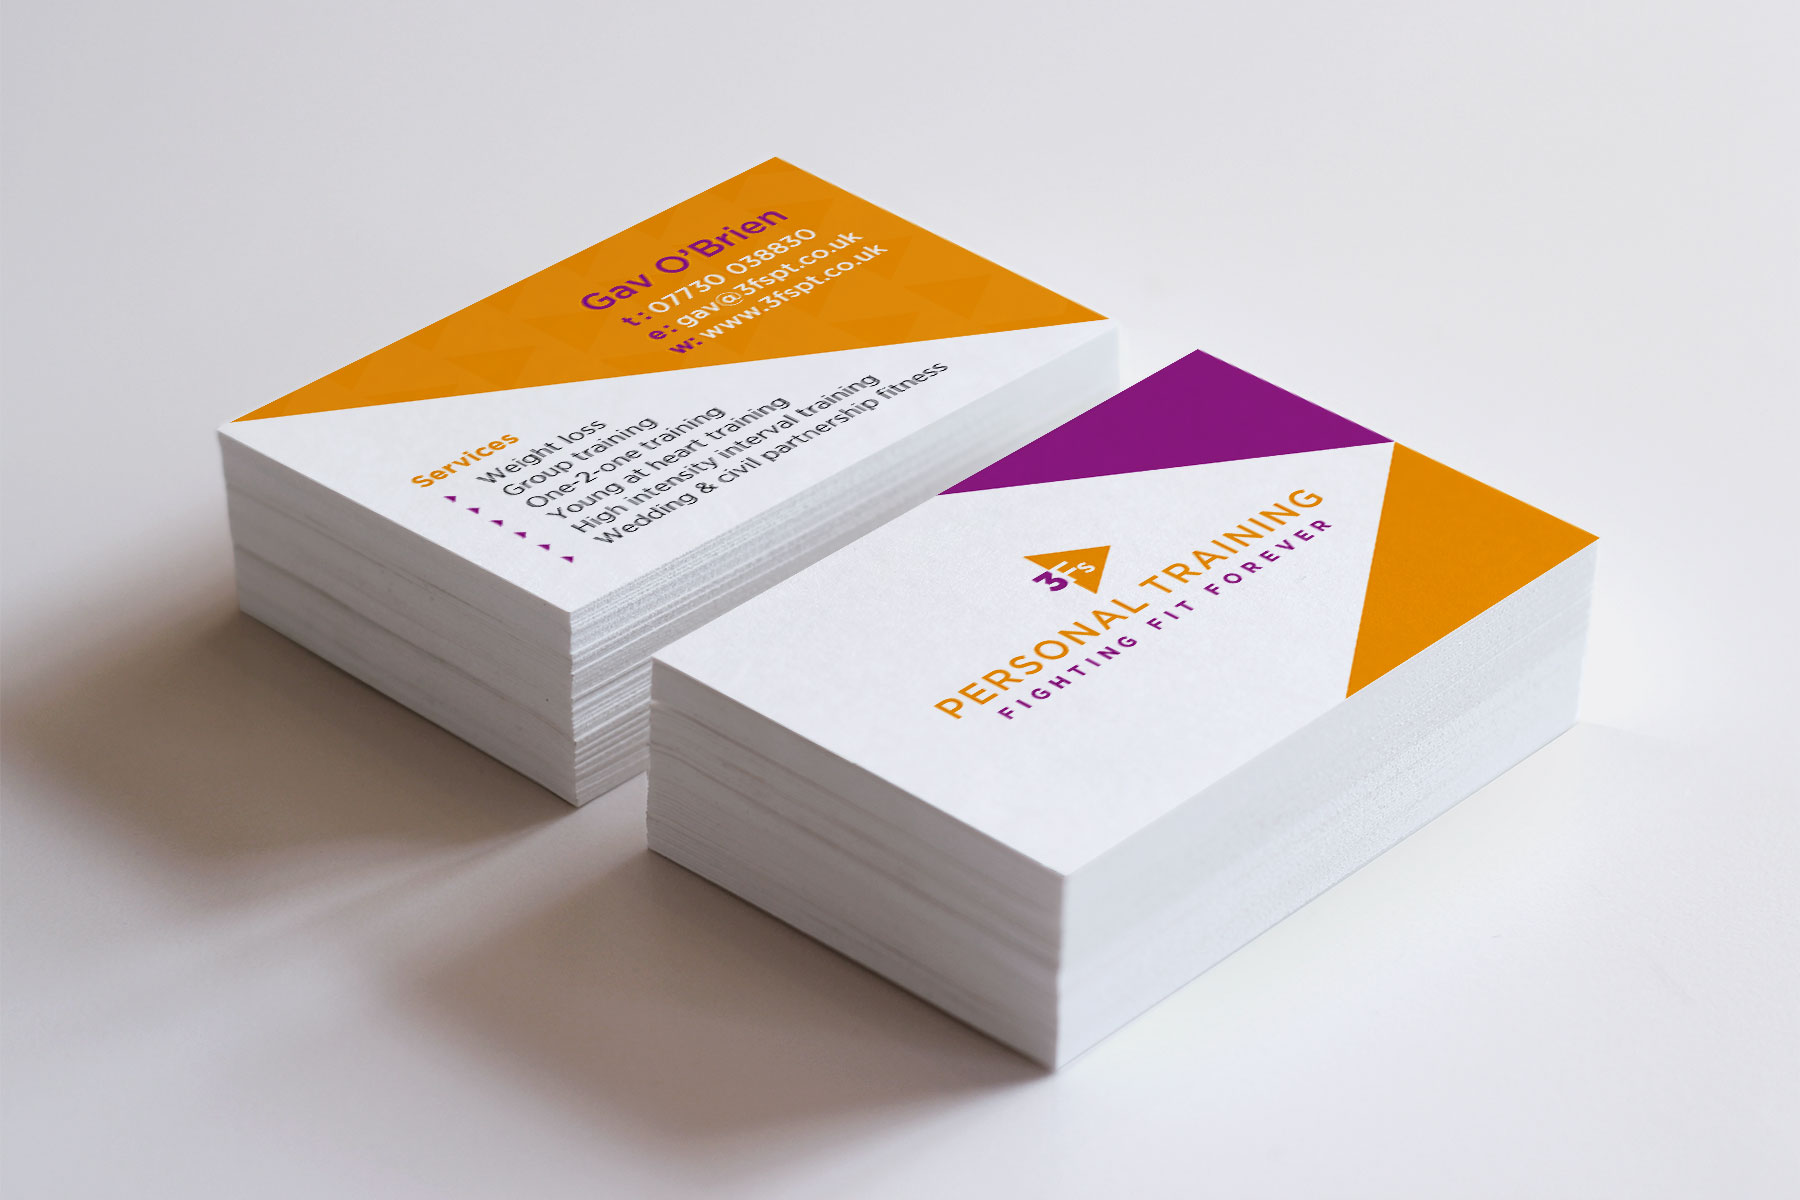 3Fs Personal Training business cards